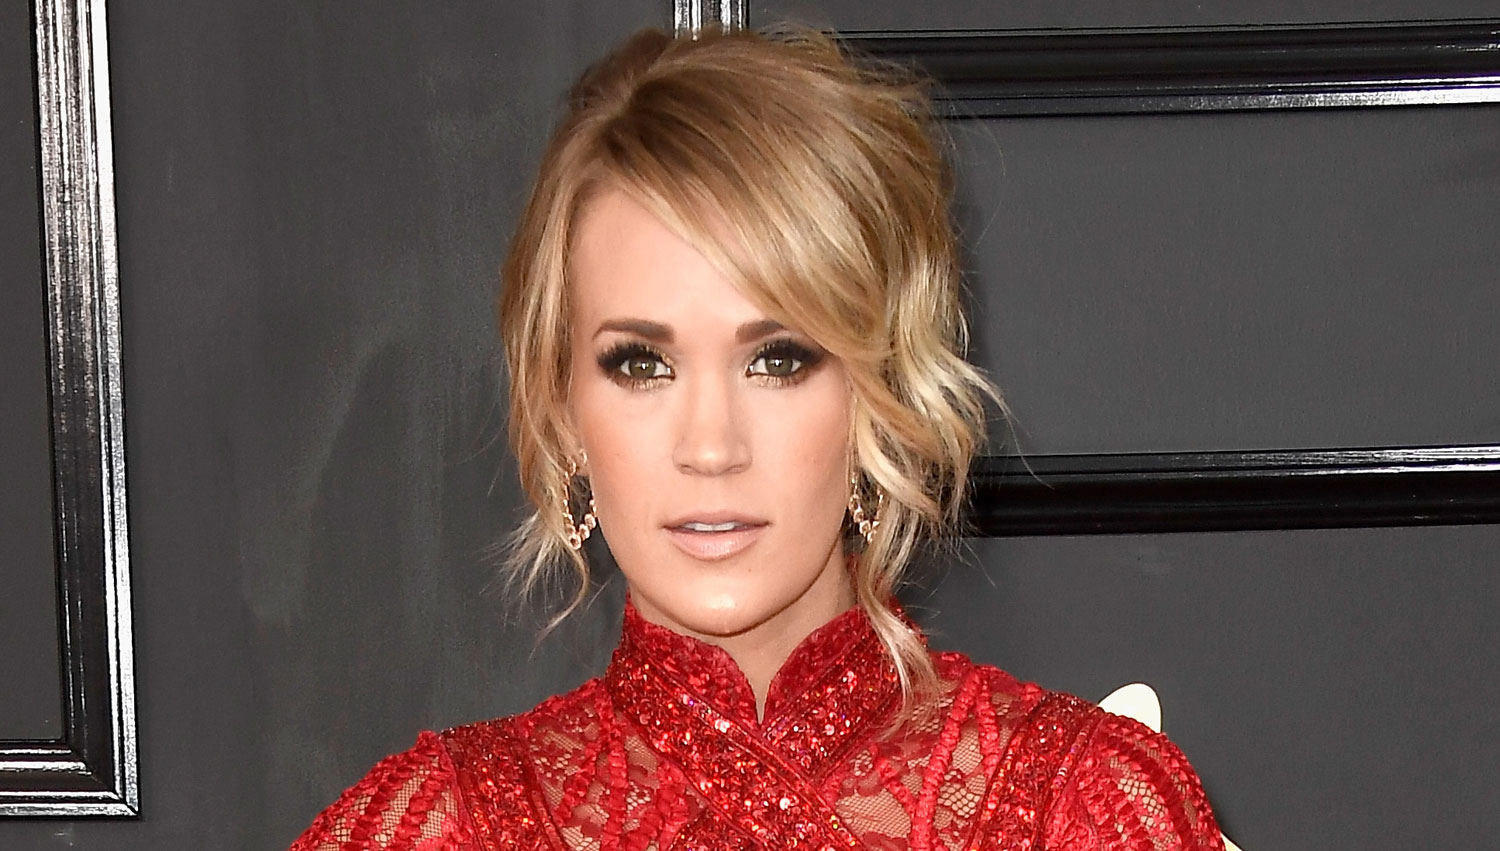 Carrie Underwood Signs With A New Record Label